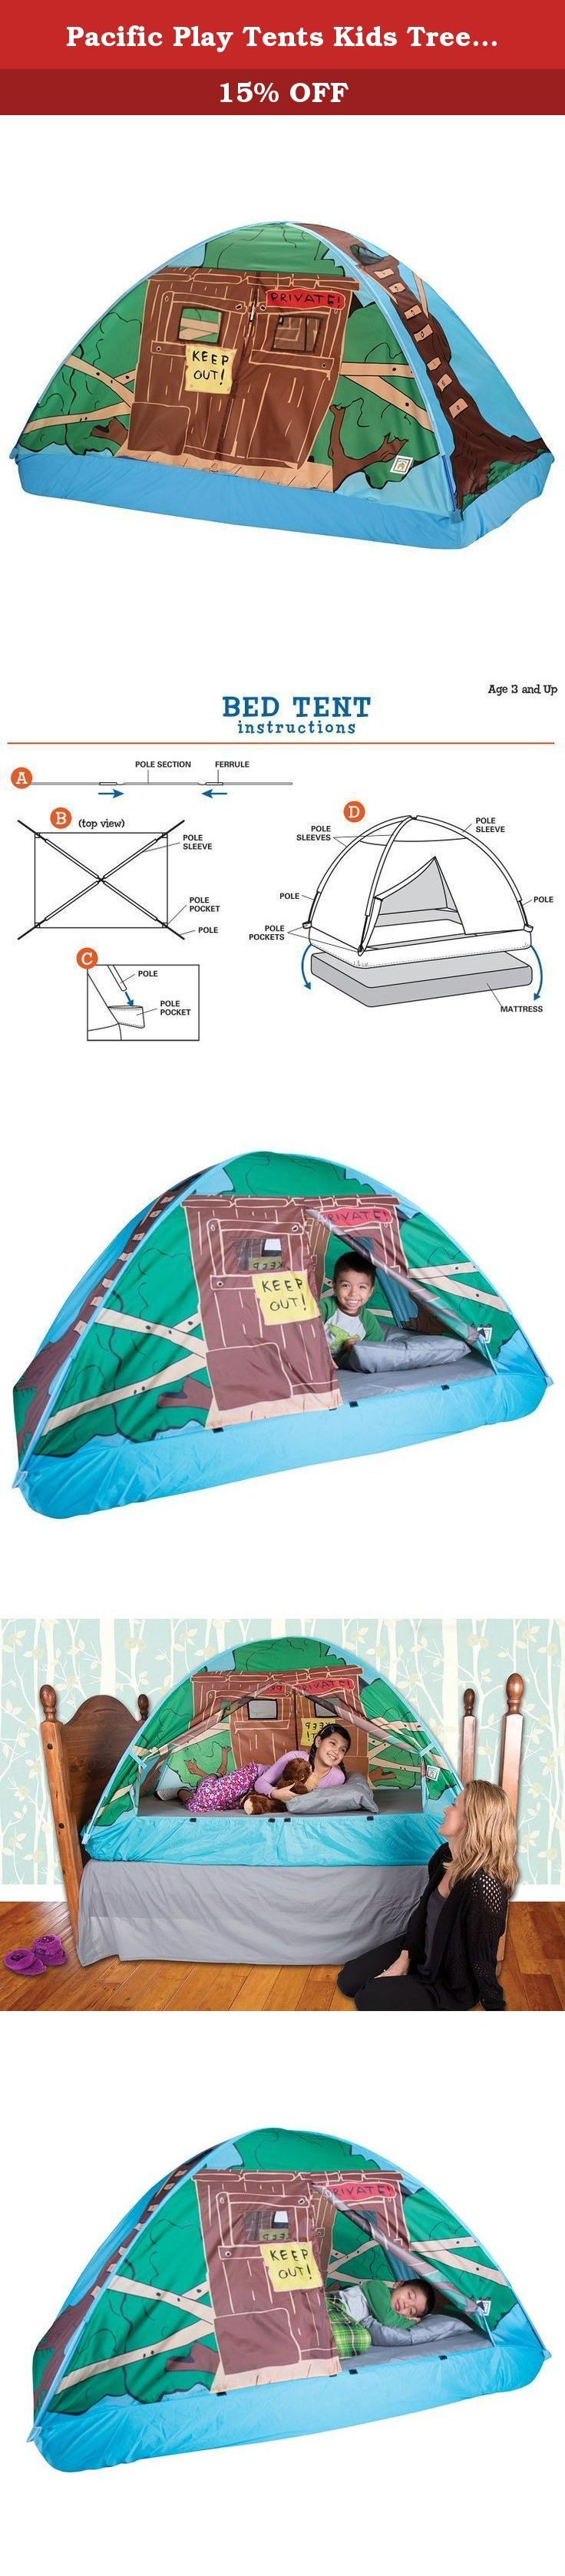 Pacific Play Tents Kids Tree House Bed Tent Playhouse - Twin Size. Pacific Play Tents  sc 1 st  Pinterest & 326 best Play Tents u0026 Tunnels Sports u0026 Outdoor Play Toys u0026 Games ...